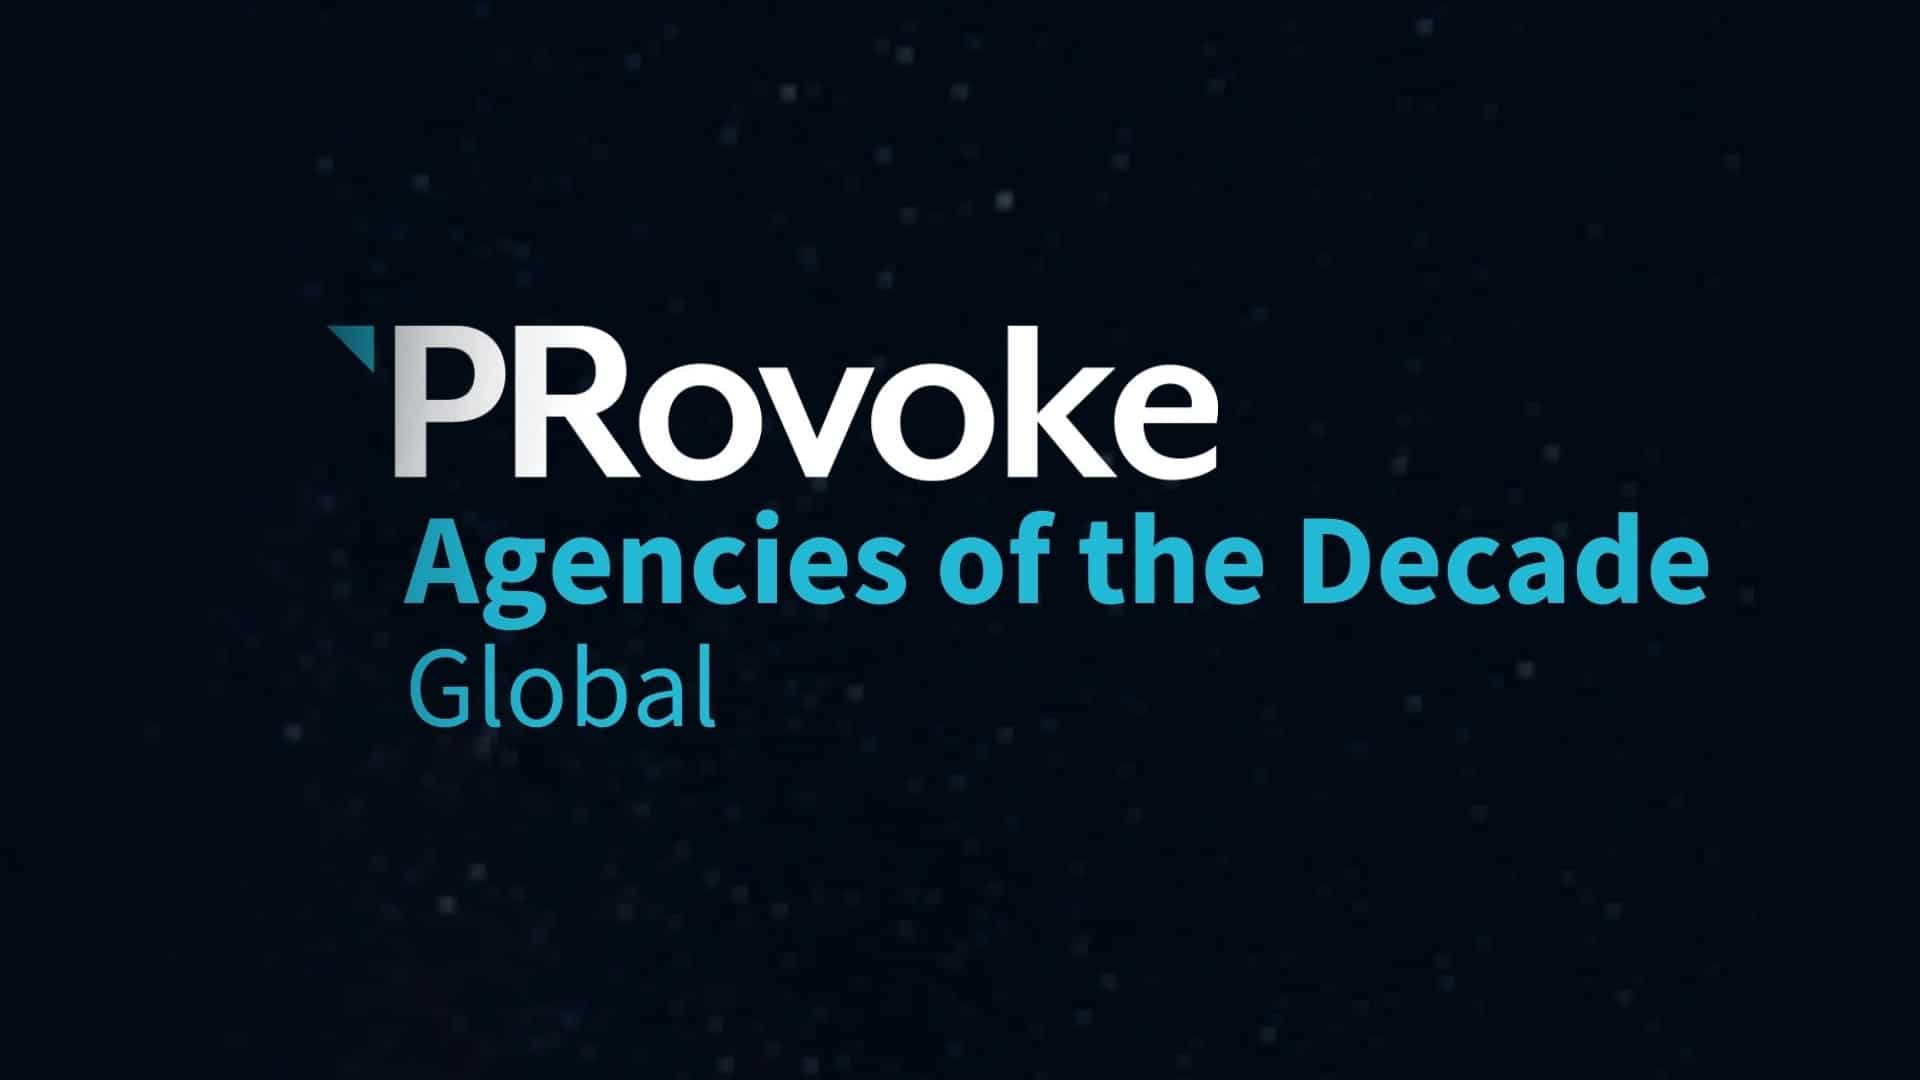 agency of the decade